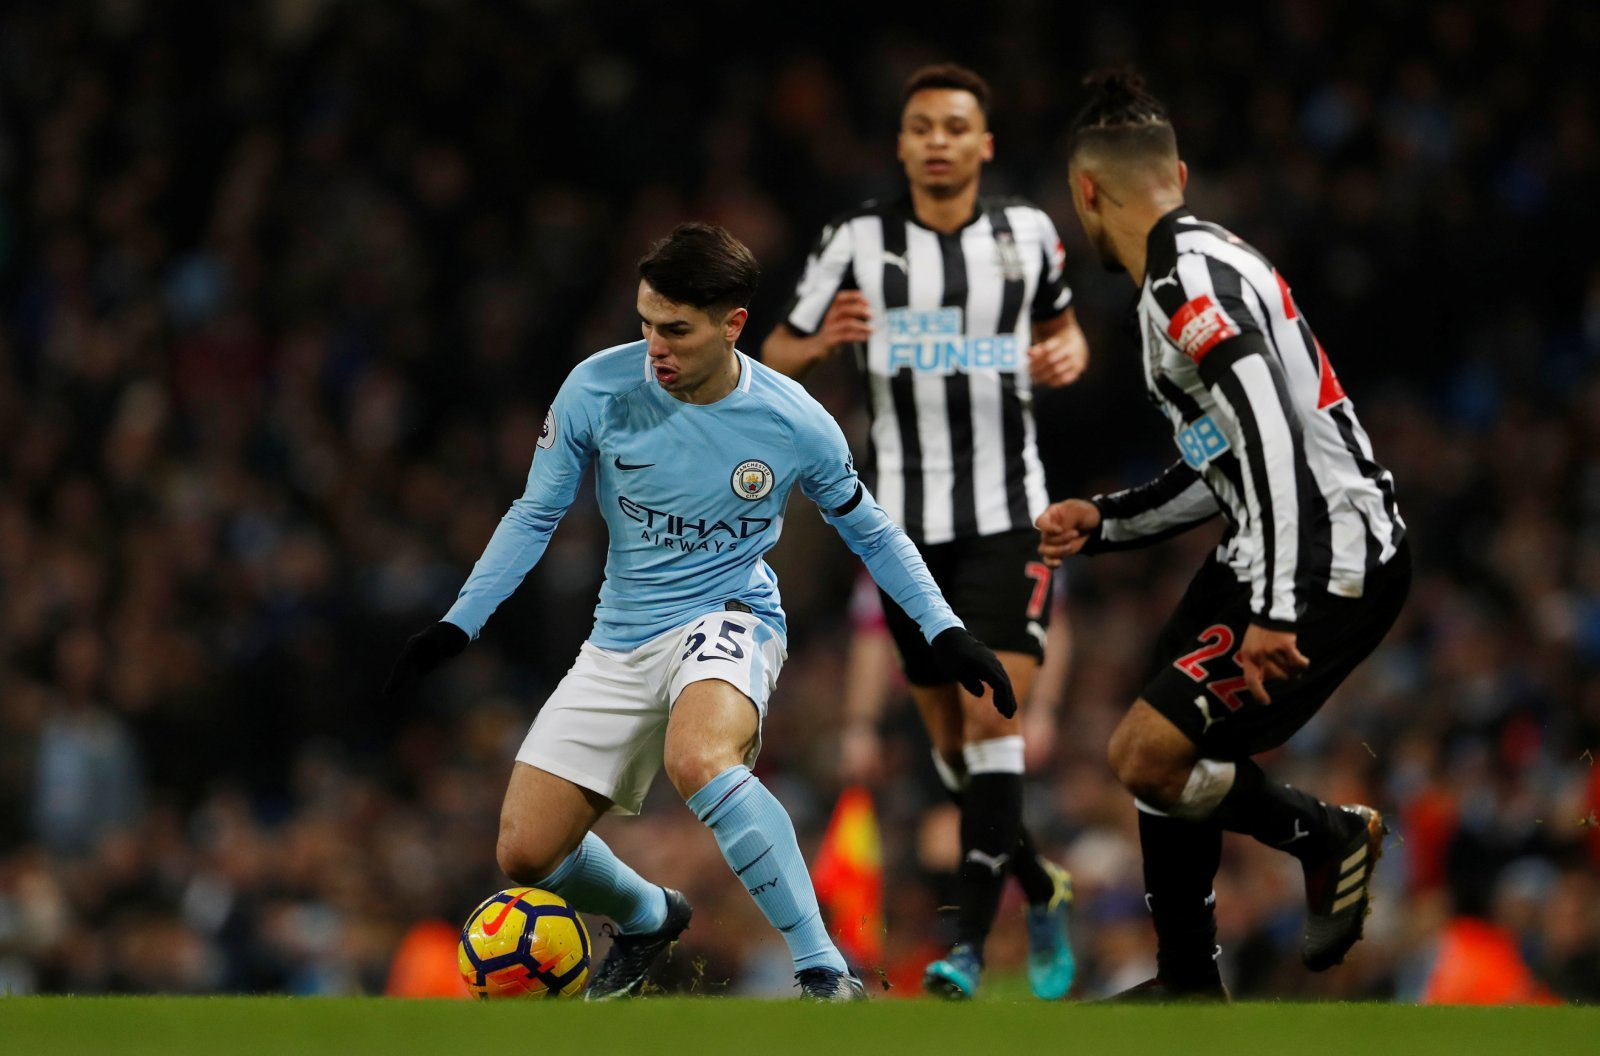 De Bruyne's injury could open the door for Brahim Diaz to stake claim for Man City spot